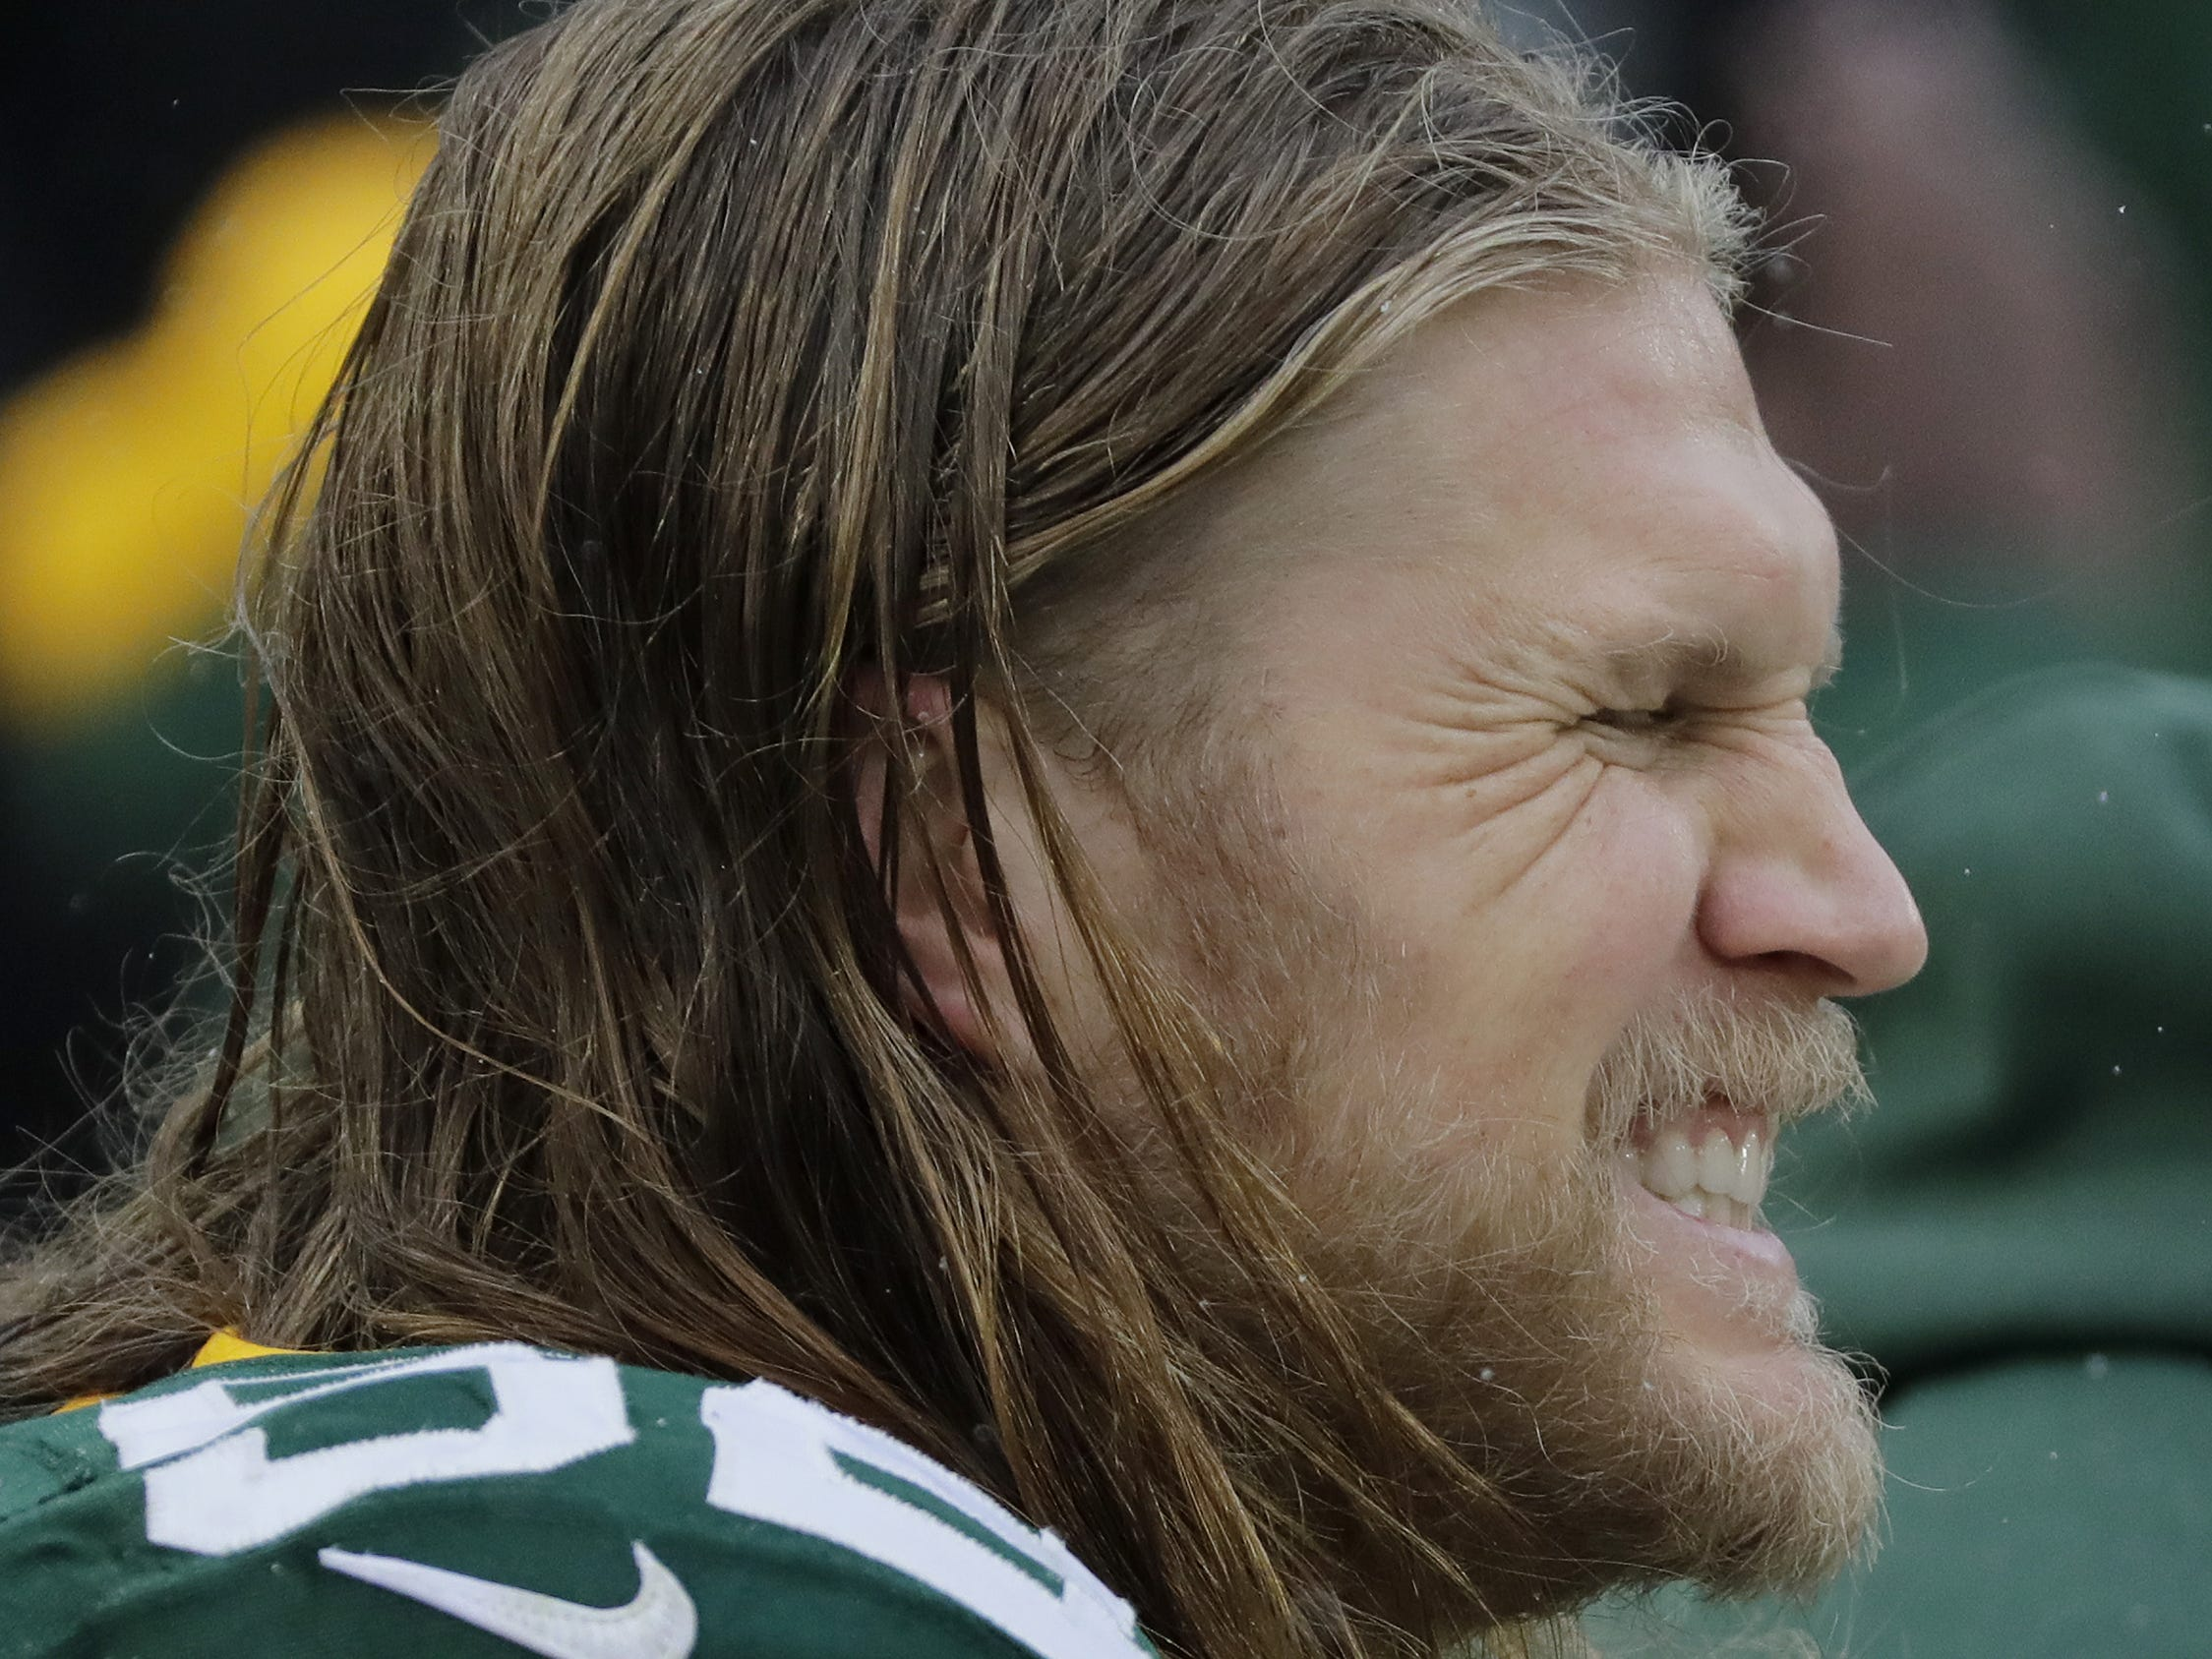 Green Bay Packers outside linebacker Clay Matthews (52) grimaces while his foot is attended to by the medical staff during the second half against the Arizona Cardinals at Lambeau Field on Sunday, December 2, 2018 in Green Bay, Wis.